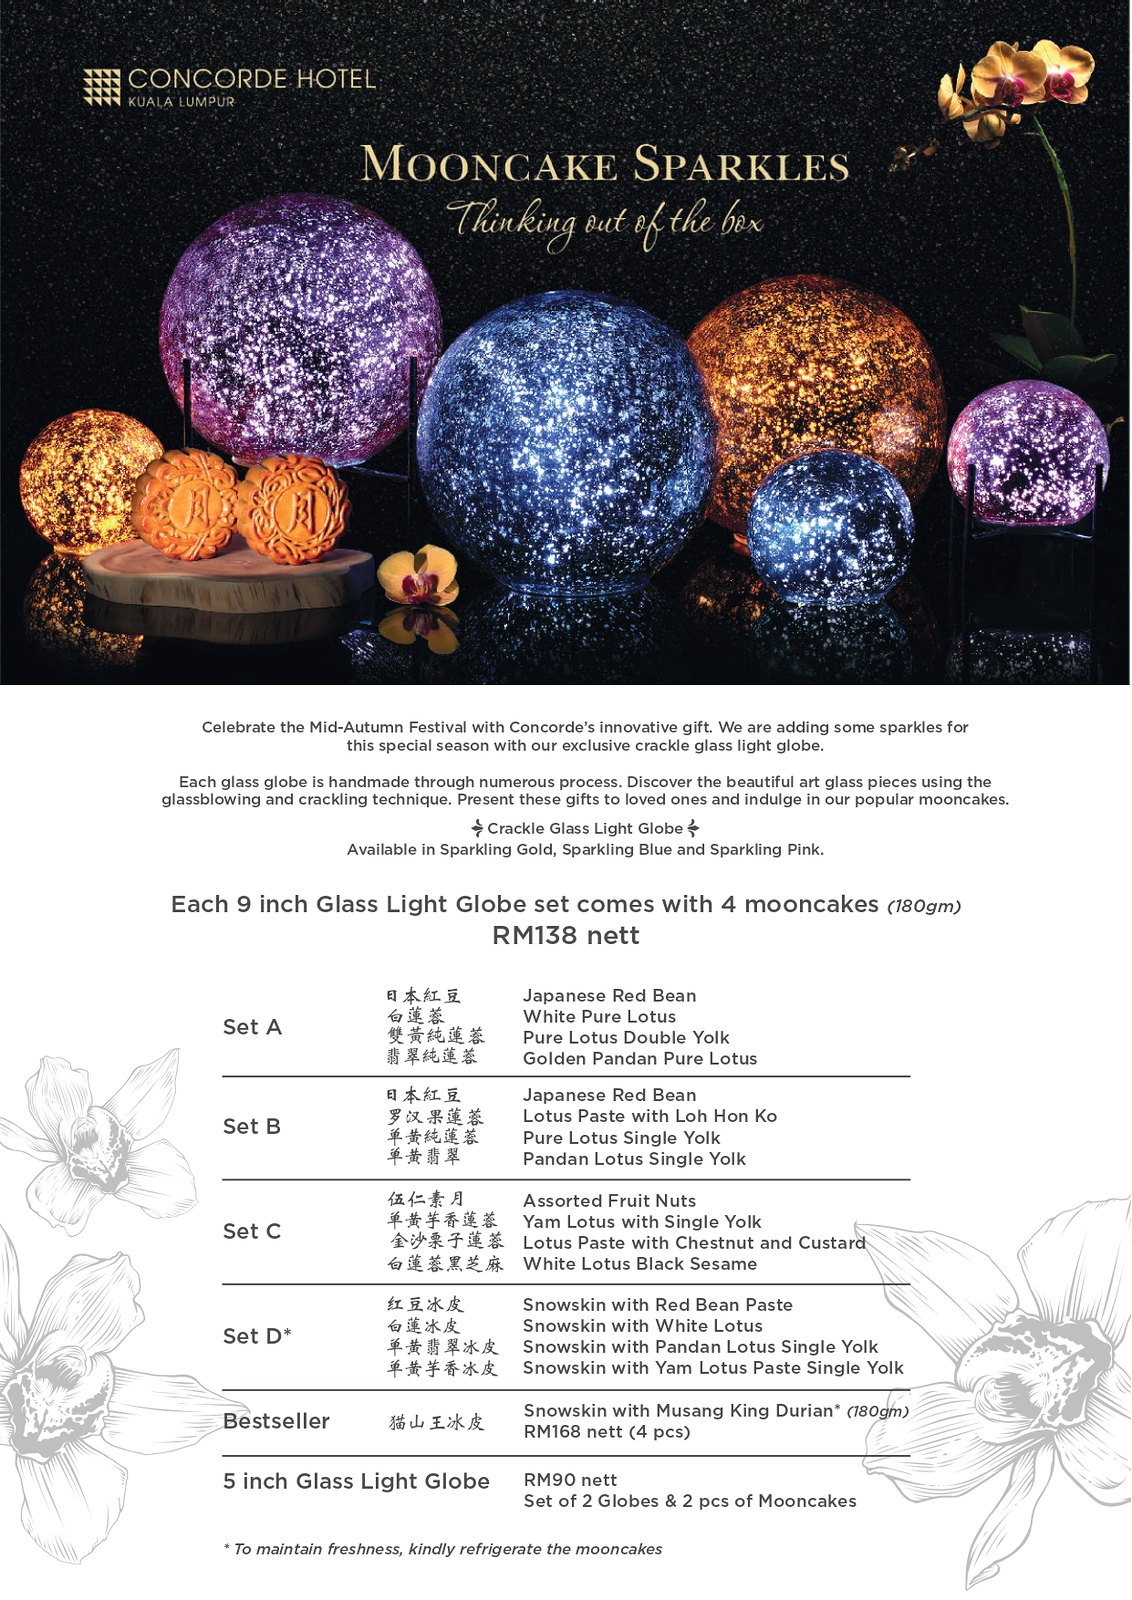 Concorde-Mooncake-Sparkles-Flyer-2019_pages-to-jpg-0001